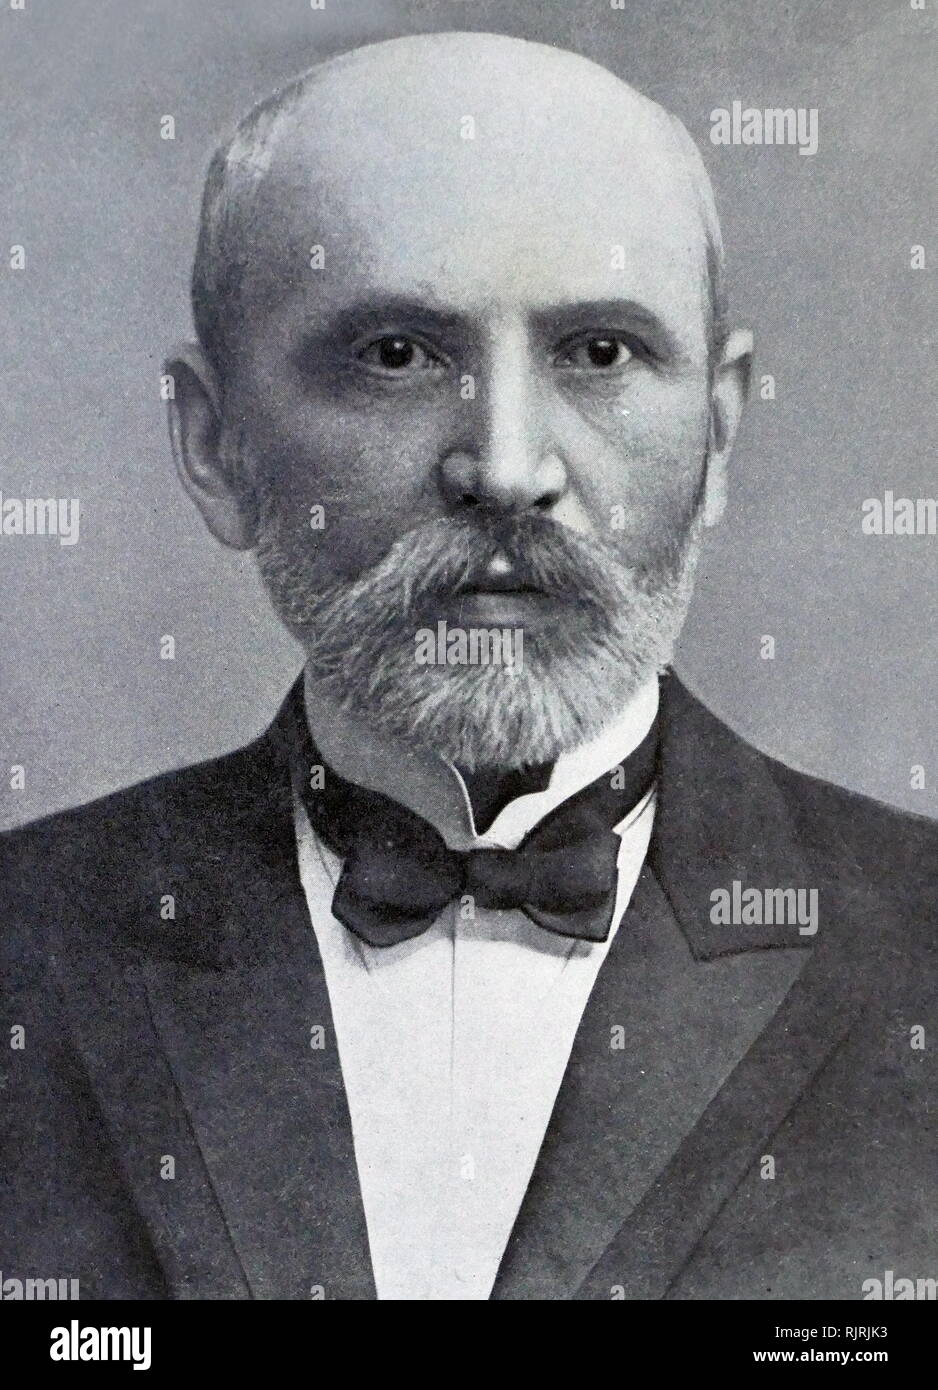 Avigdor Green (Grun), 1856 - 1942; Zionist activist, the father of David Ben-Gurion, the first Prime Minister of Israel. - Stock Image